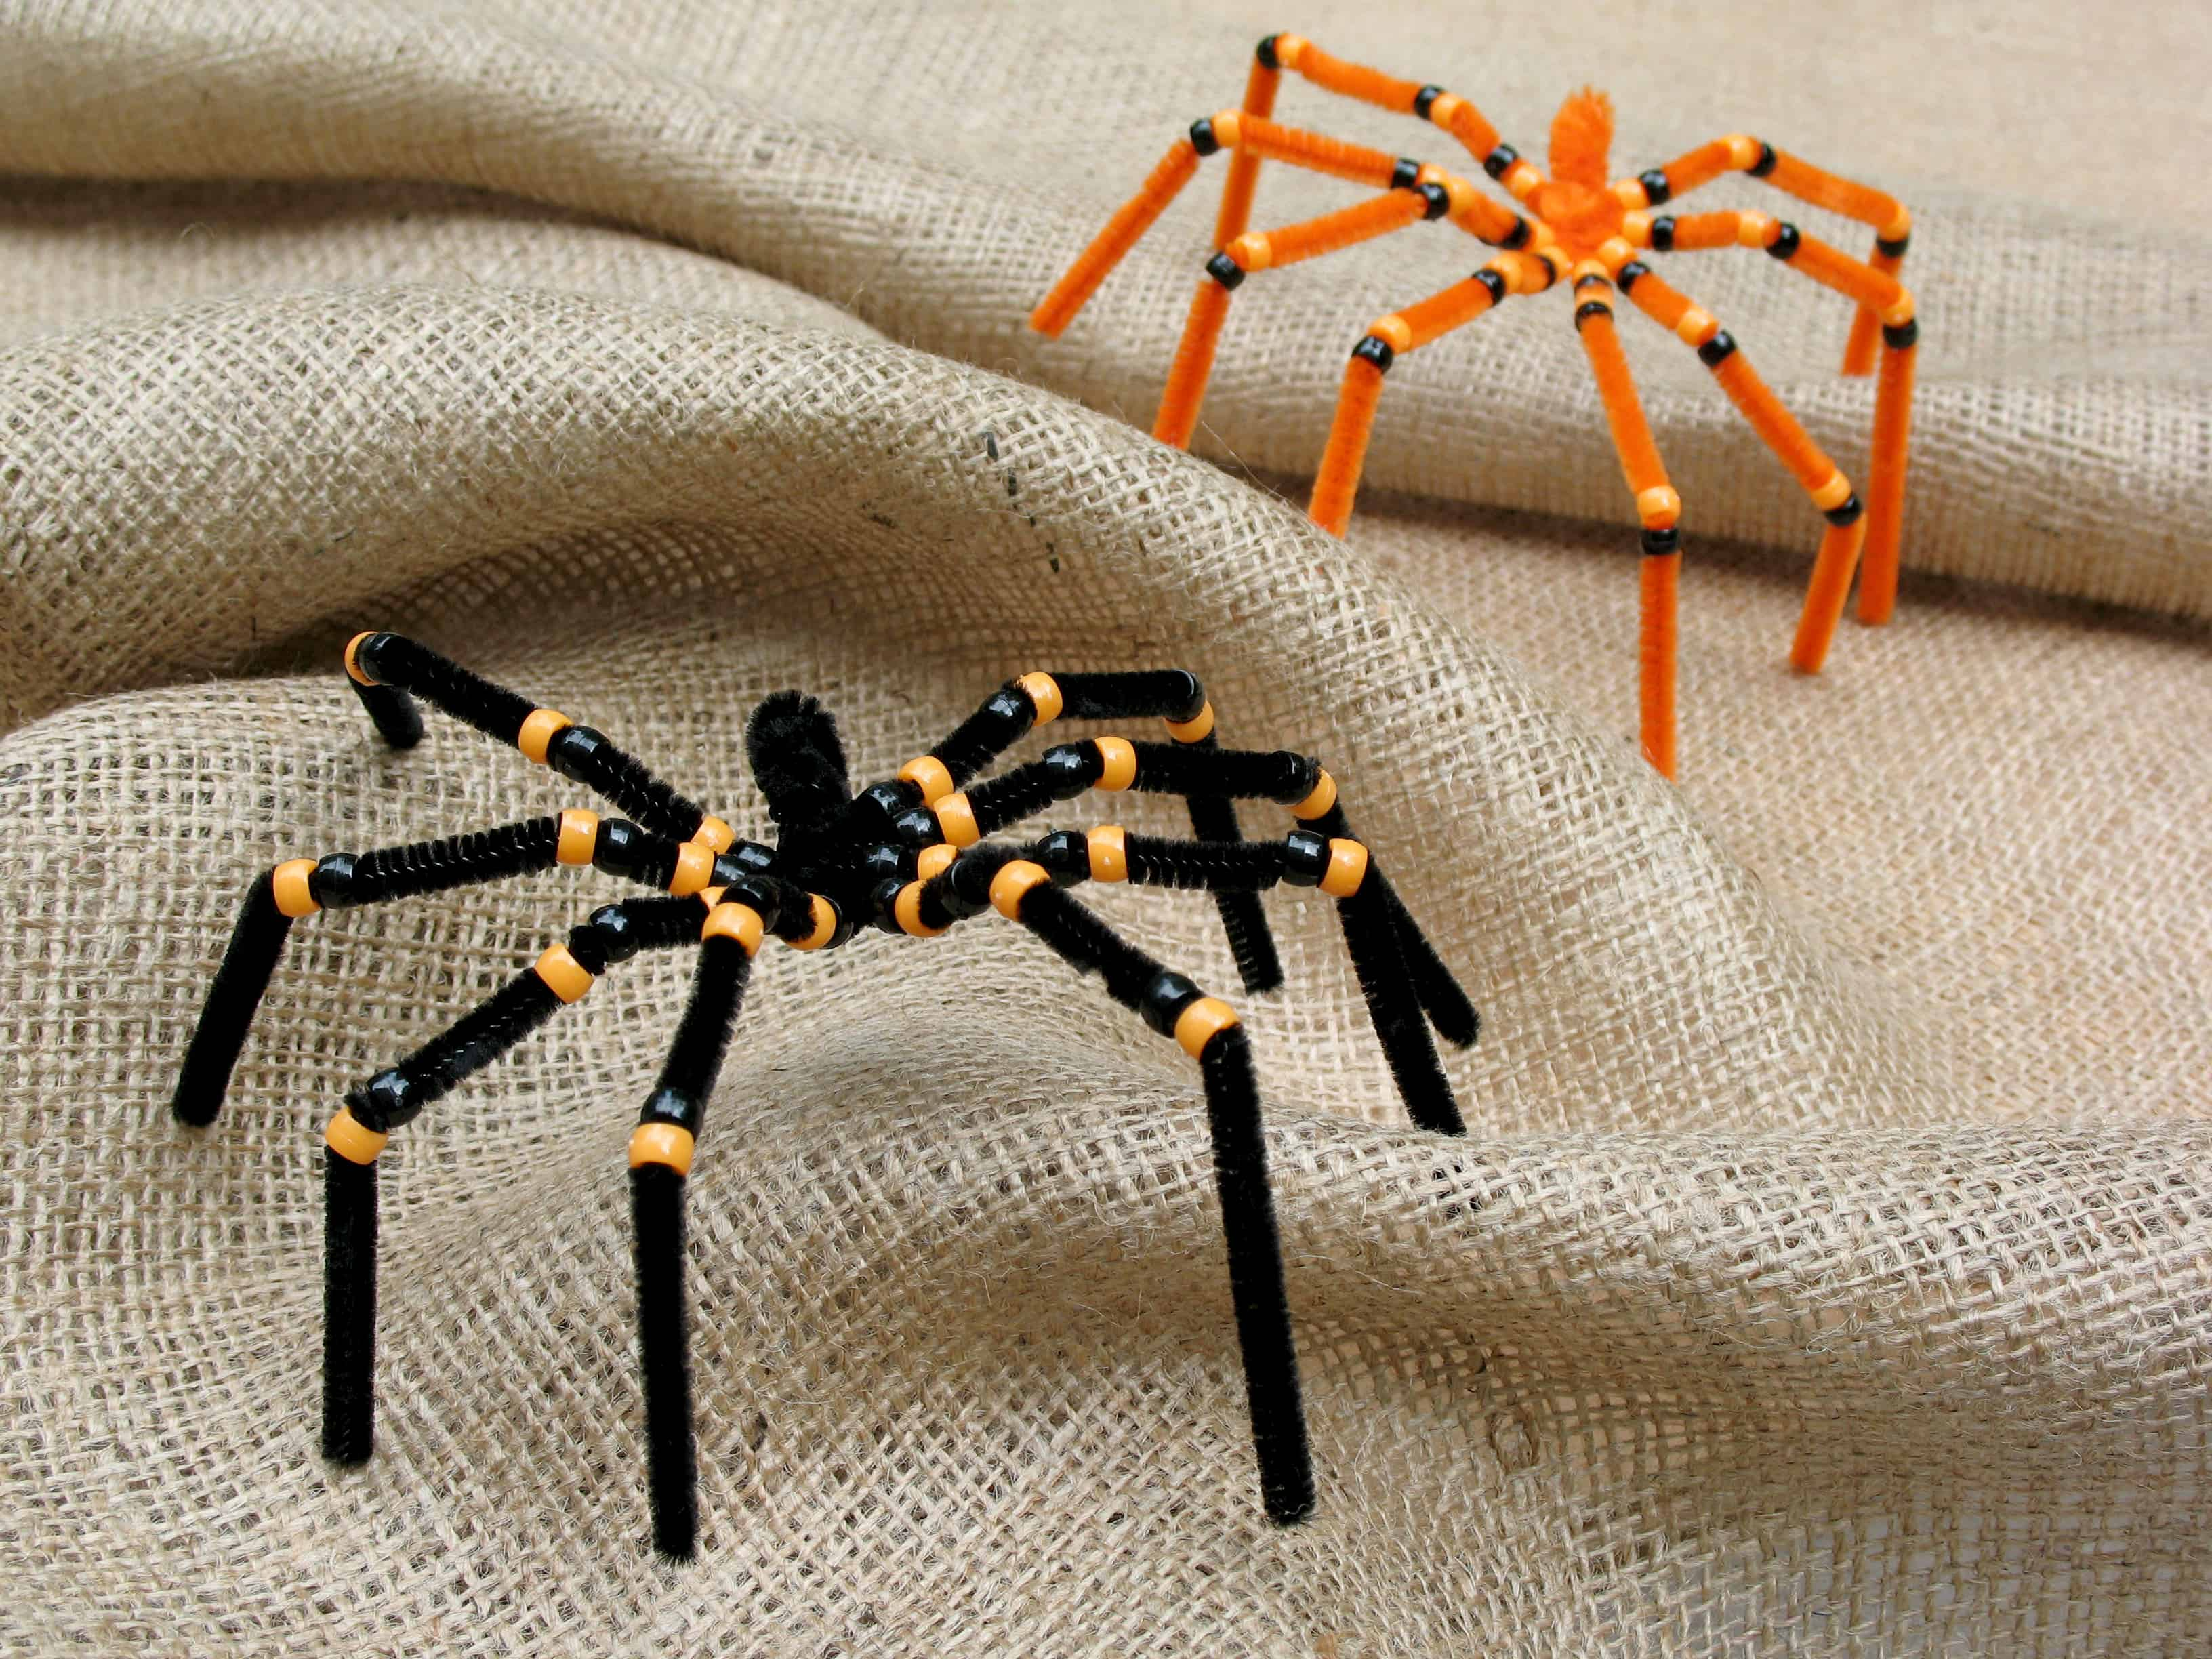 3 Pipe Cleaner And Bead Spiders